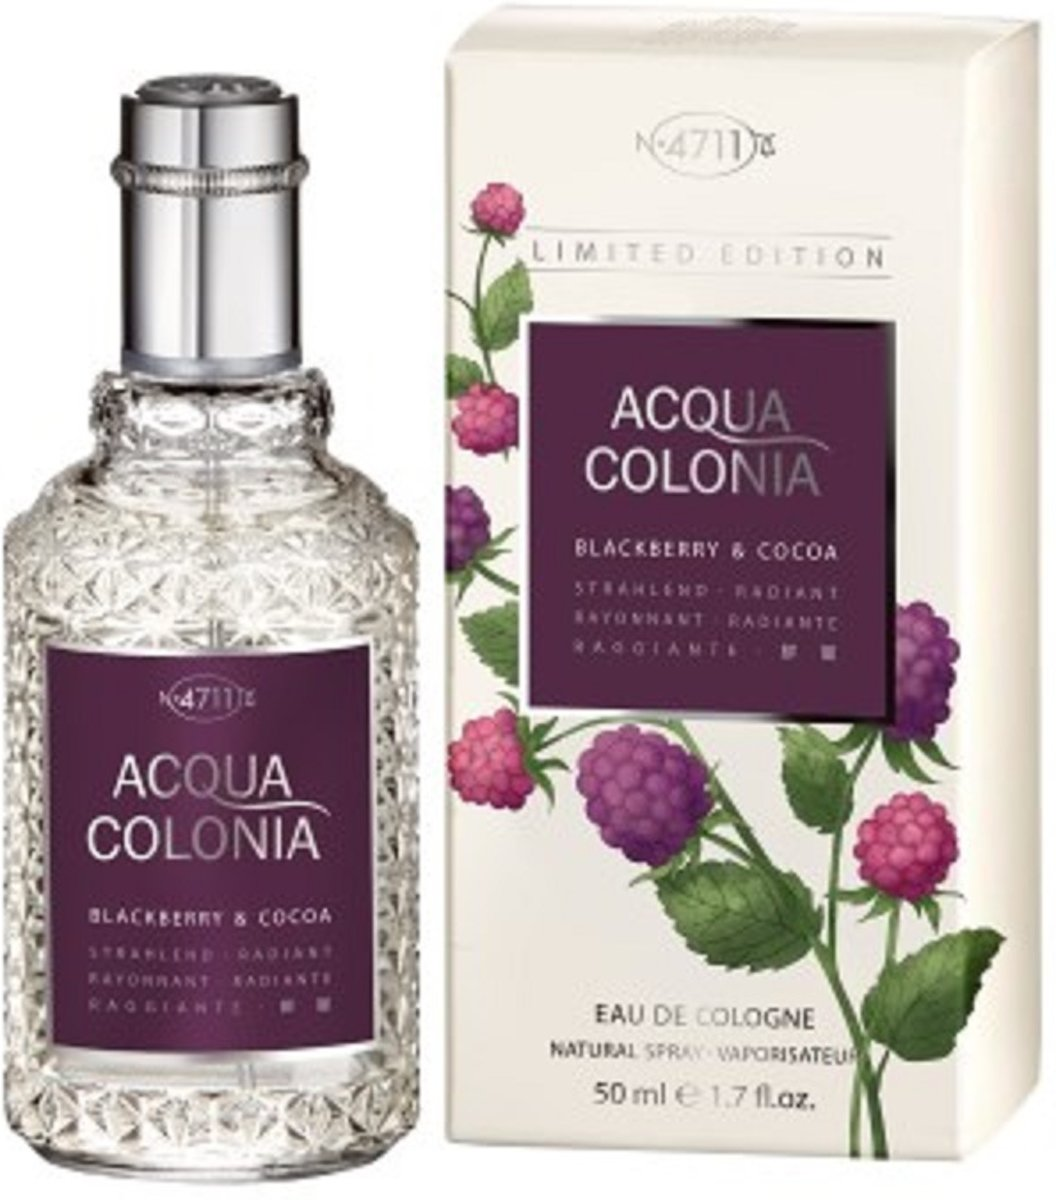 Acqua Colonia Blackberry & Cocoa Seasonal Edition